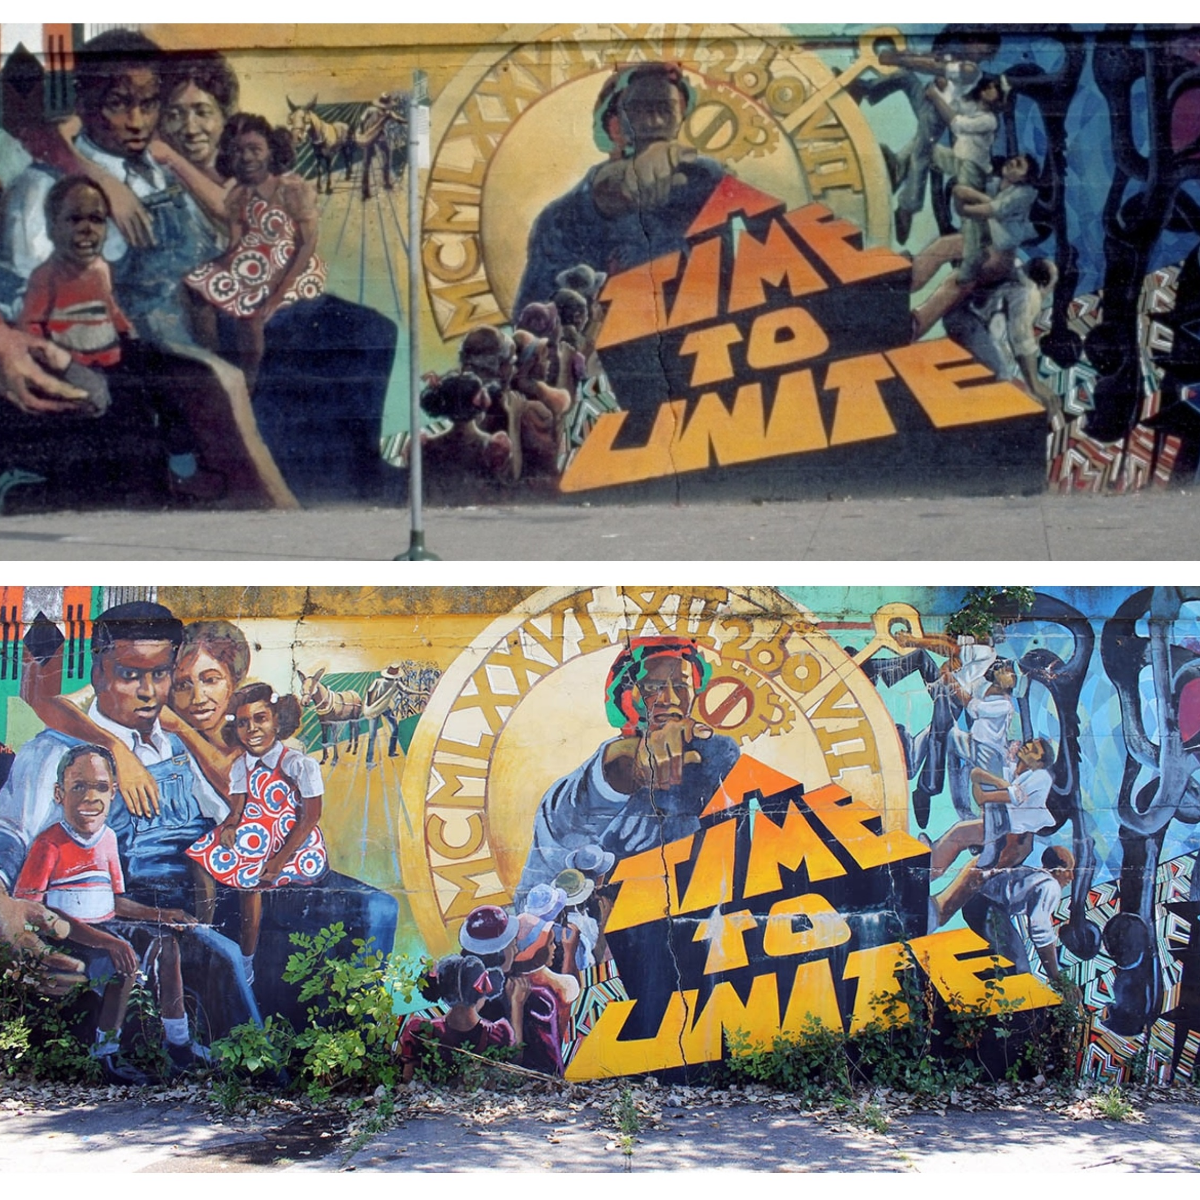 'A Time To Unite' was created by  Mitchell Caton, Calvin Jones and Justine DeVan in 1976. It's one of the many public art works that went up during the Mural Movement on the South Side. For artists of this time, murals were a way for artists to collaborate with community members and create a work that reflected the socio-political happenings of the time. According to art historian Marissa H. Baker, 'The murals, in their message and collaborative production, would then help instantiate the connection of the organization to the people it served.' (Top photo: George Stahl/Courtesy of George Stahl Mural Collection Archive; Bottom photo: Arionne Nettles/WBEZ).